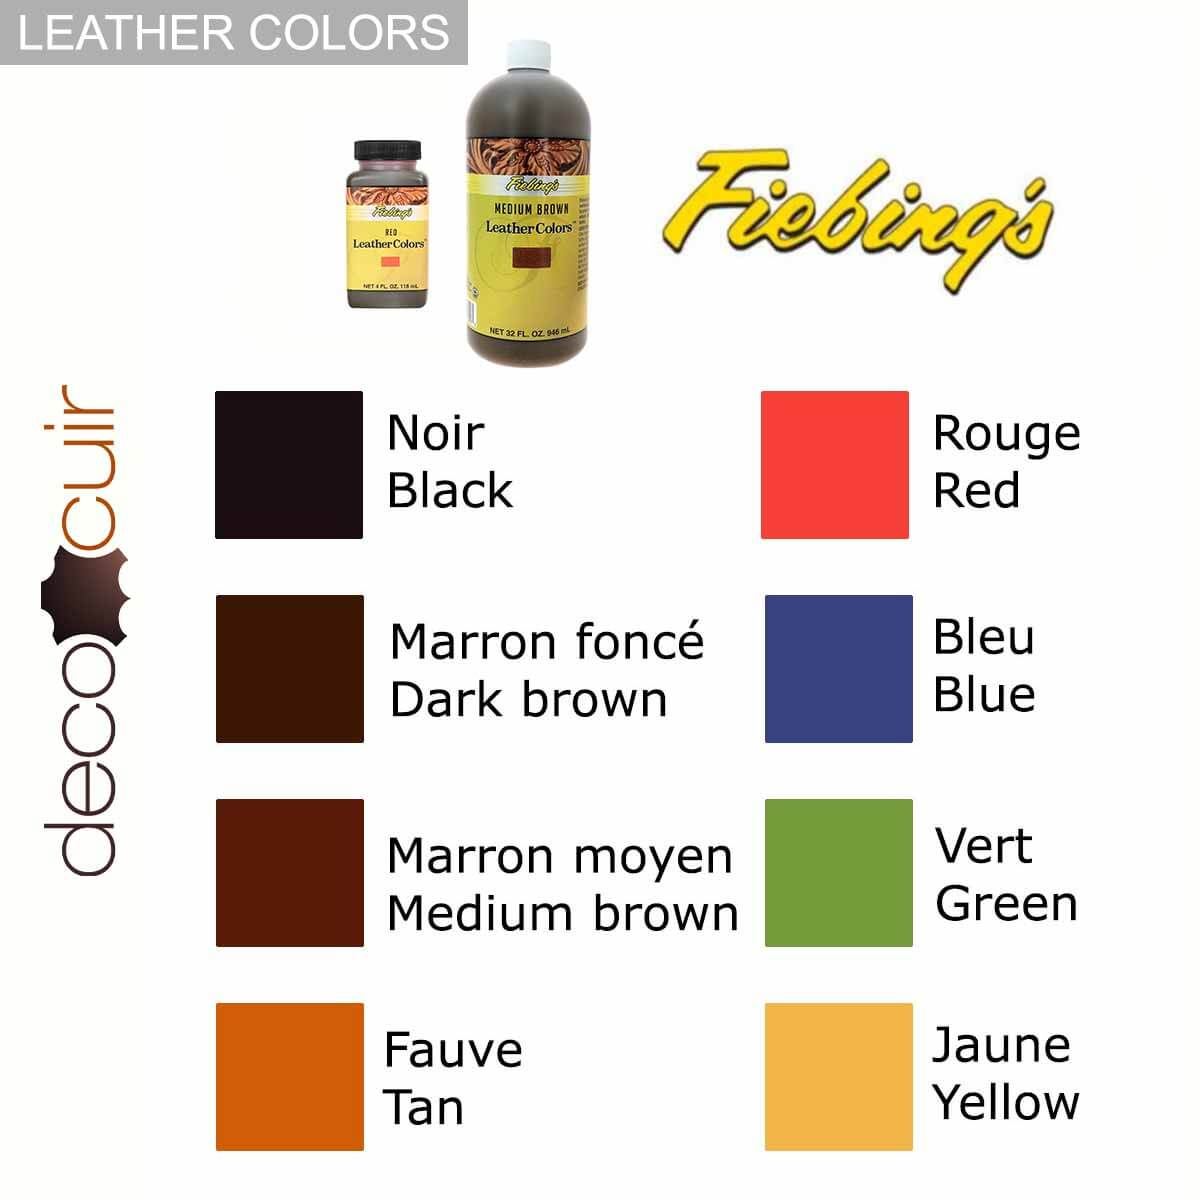 Teinture pour cuir FIEBING'S LEATHER COLORS - Institutional - MARRON CLAIR - TAN